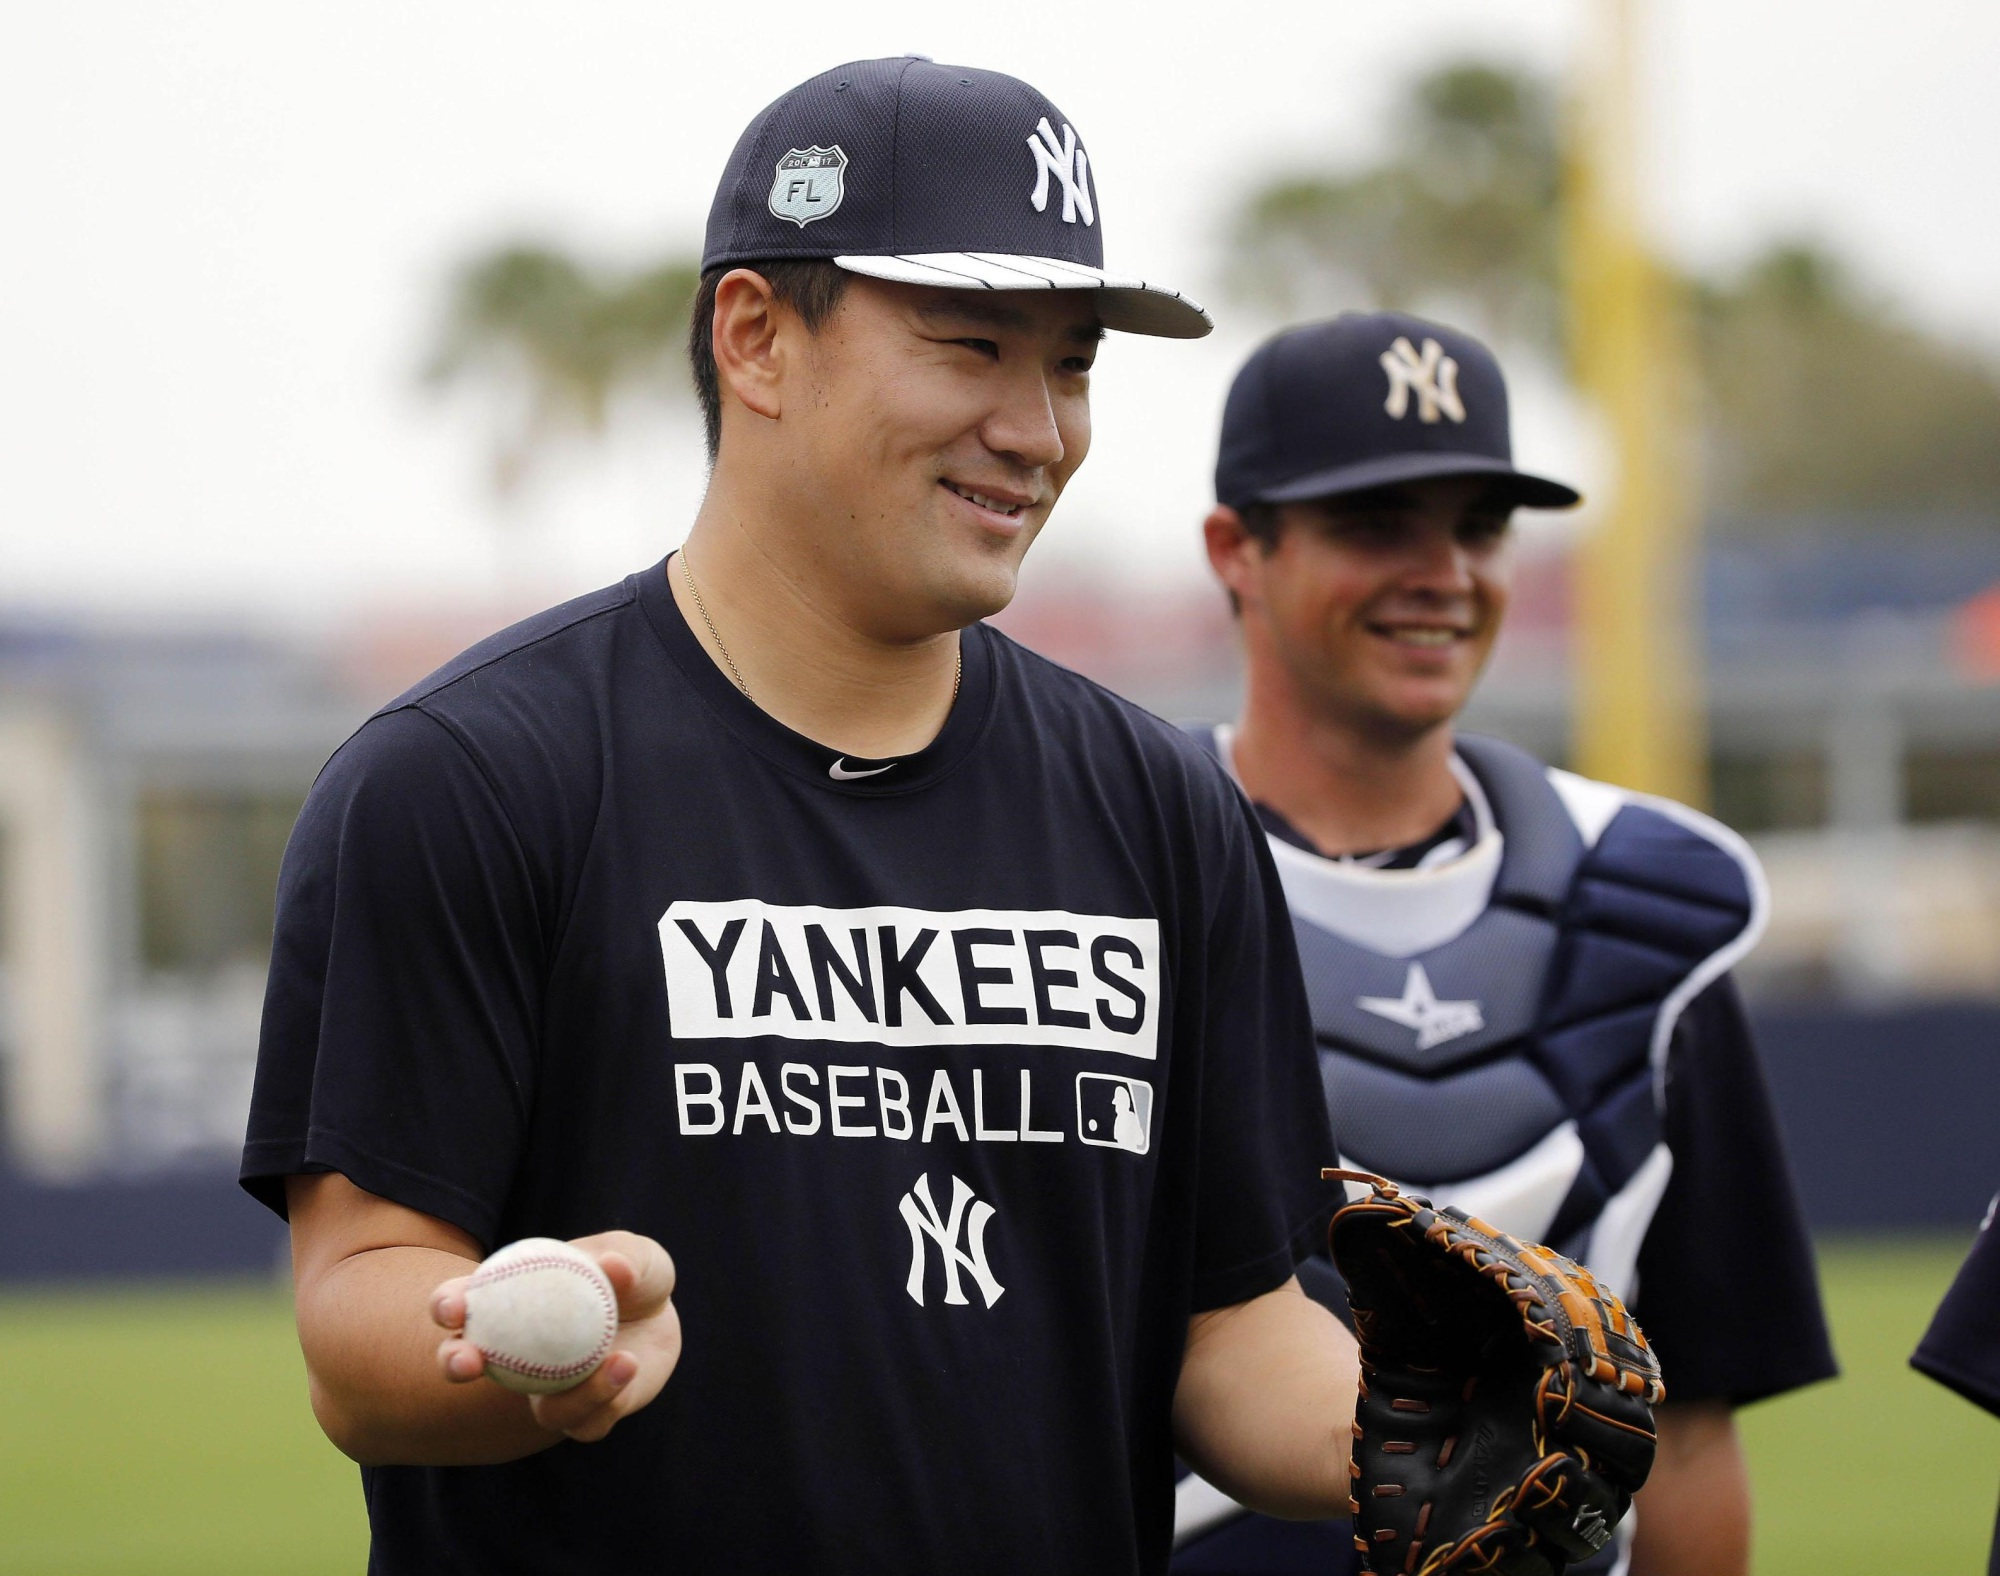 The Yankees have named Masahiro Tanaka as their starting pitcher to face the Rays on Opening Day. | KYODO